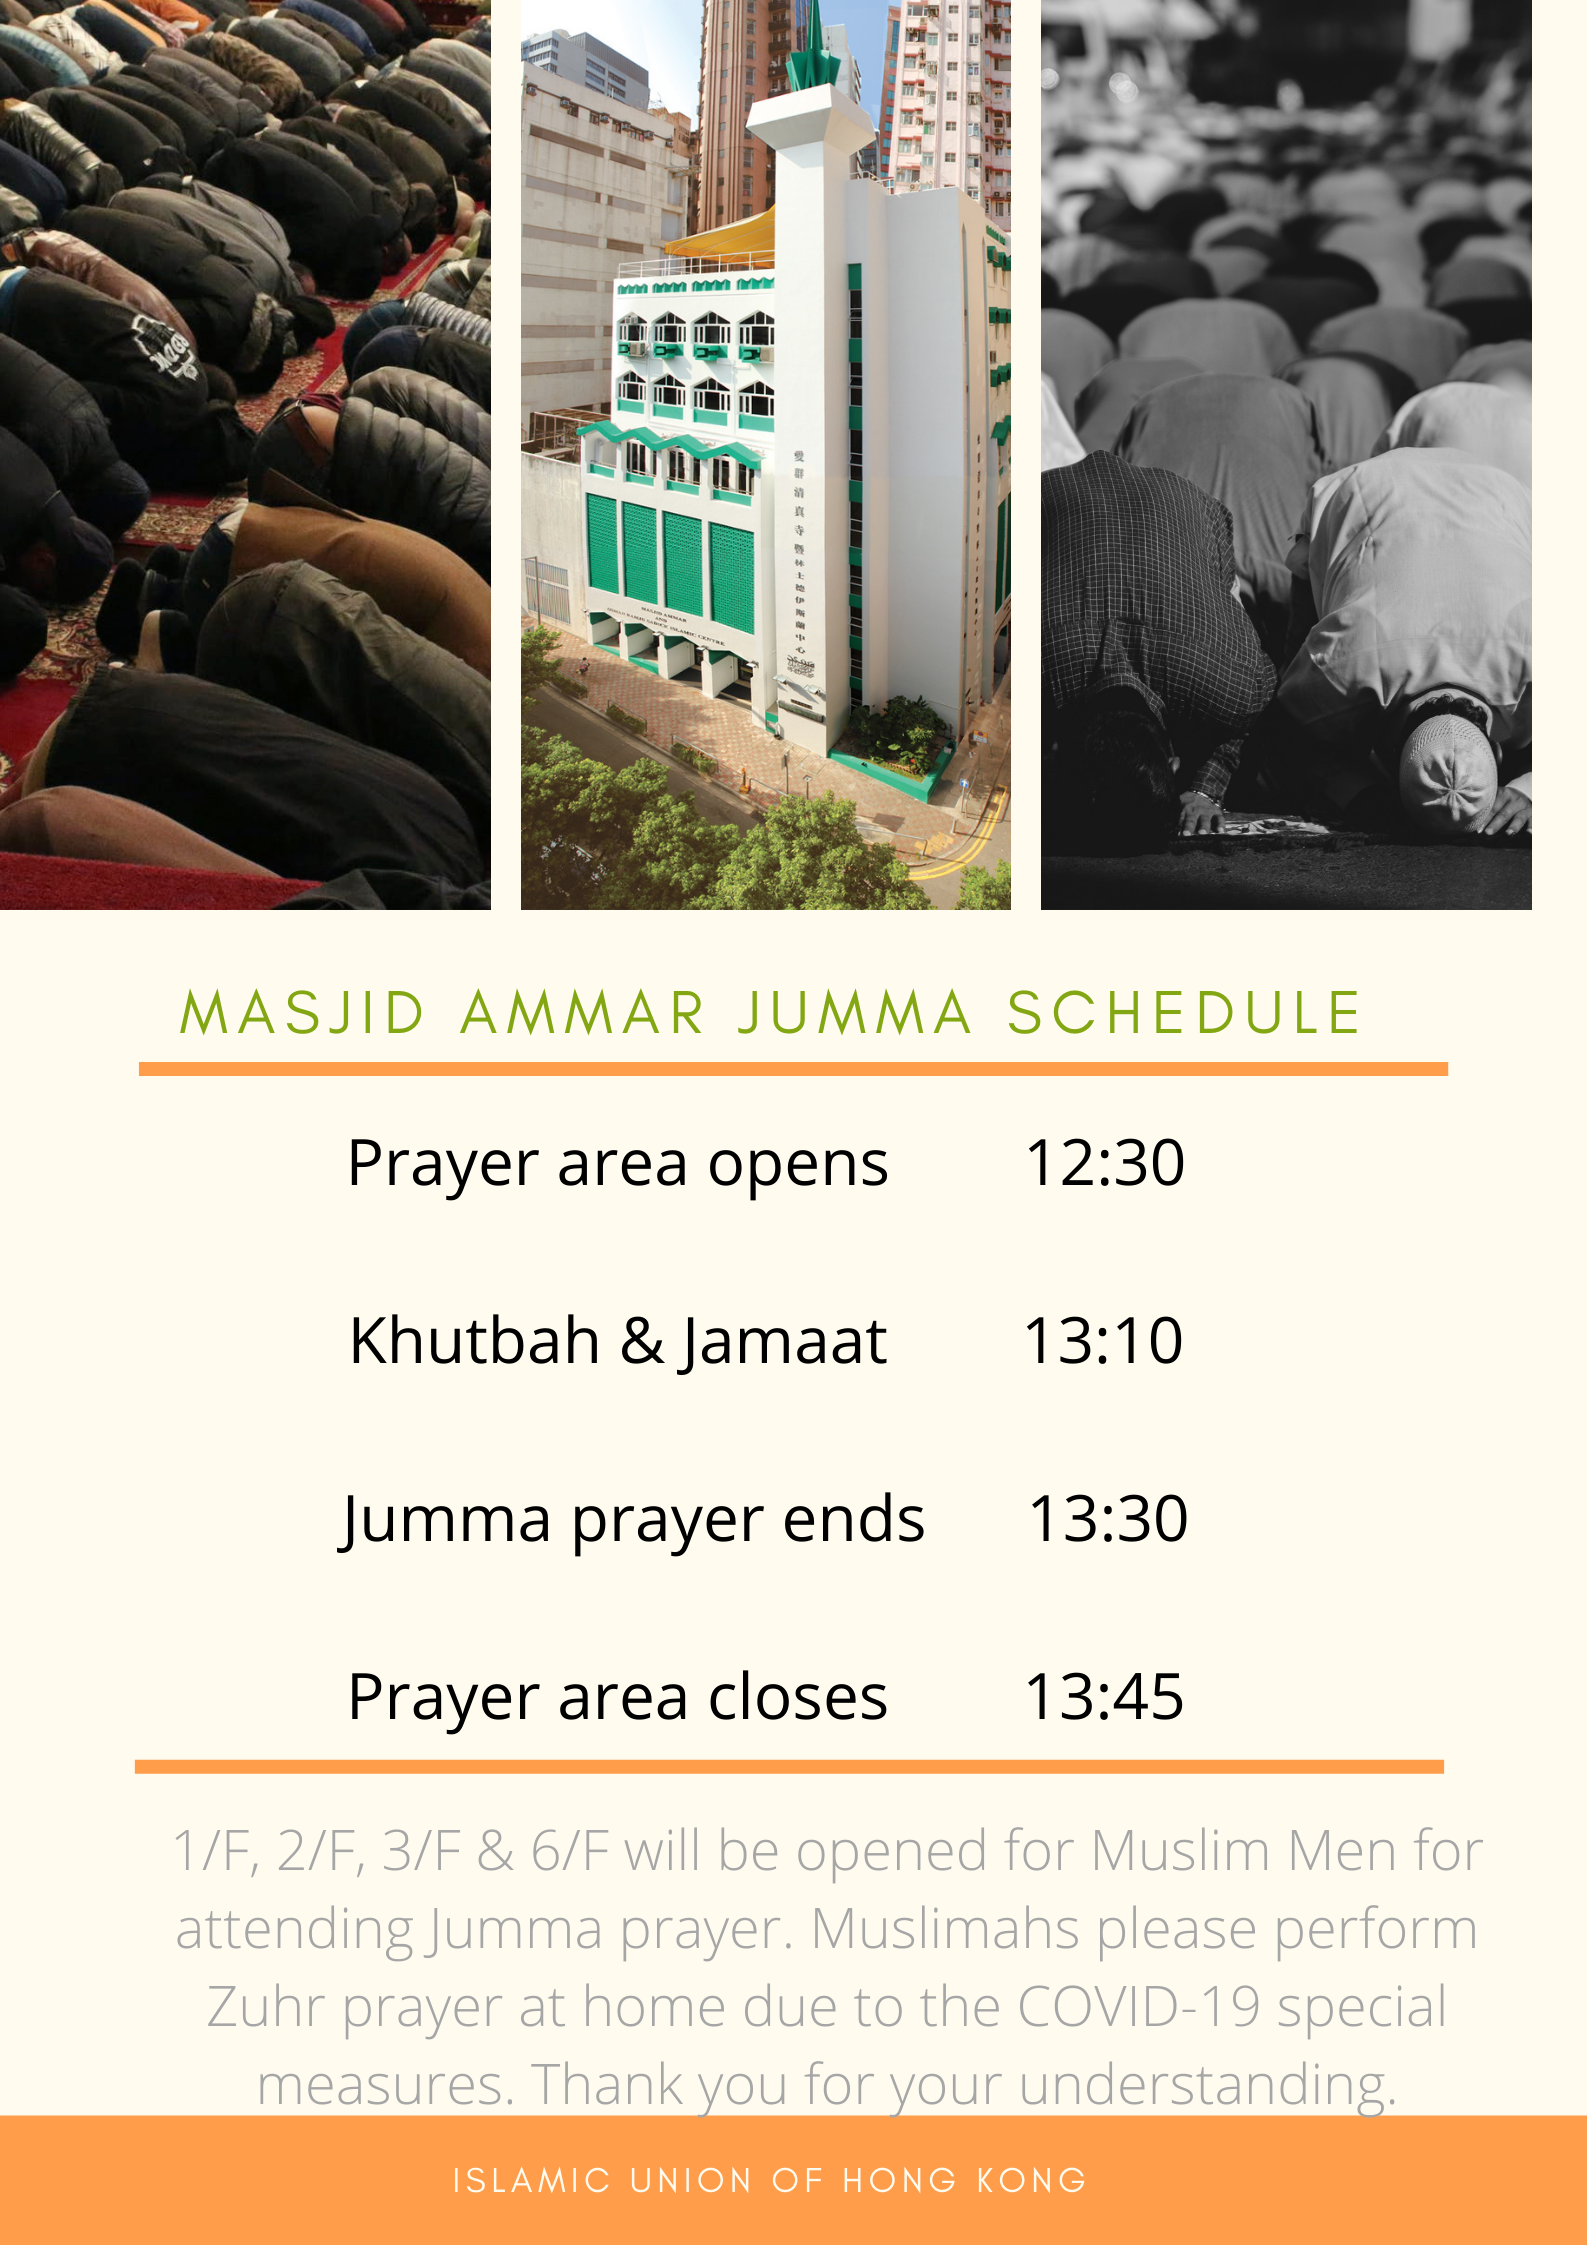 Masjid Ammar Jumma Prayer Schedule (Sept 2020)